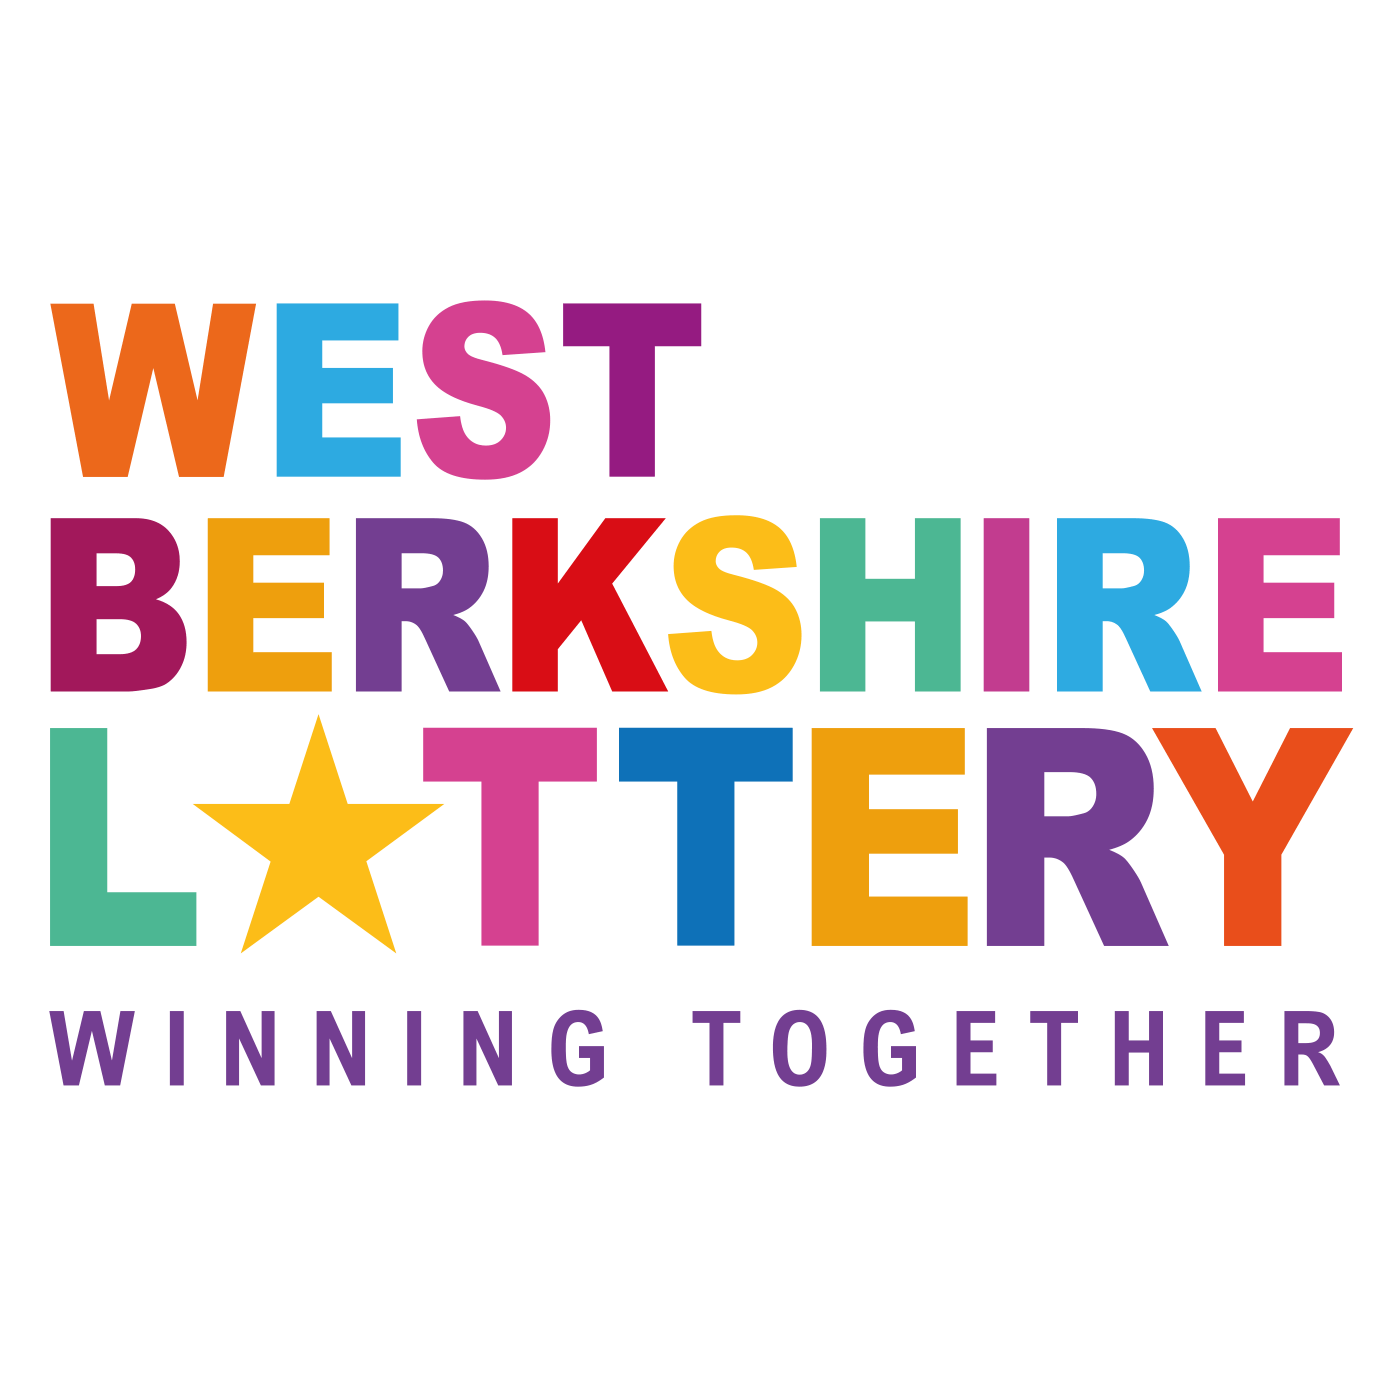 Lottery funds never more vital as West Berkshire Lottery turns 1 today